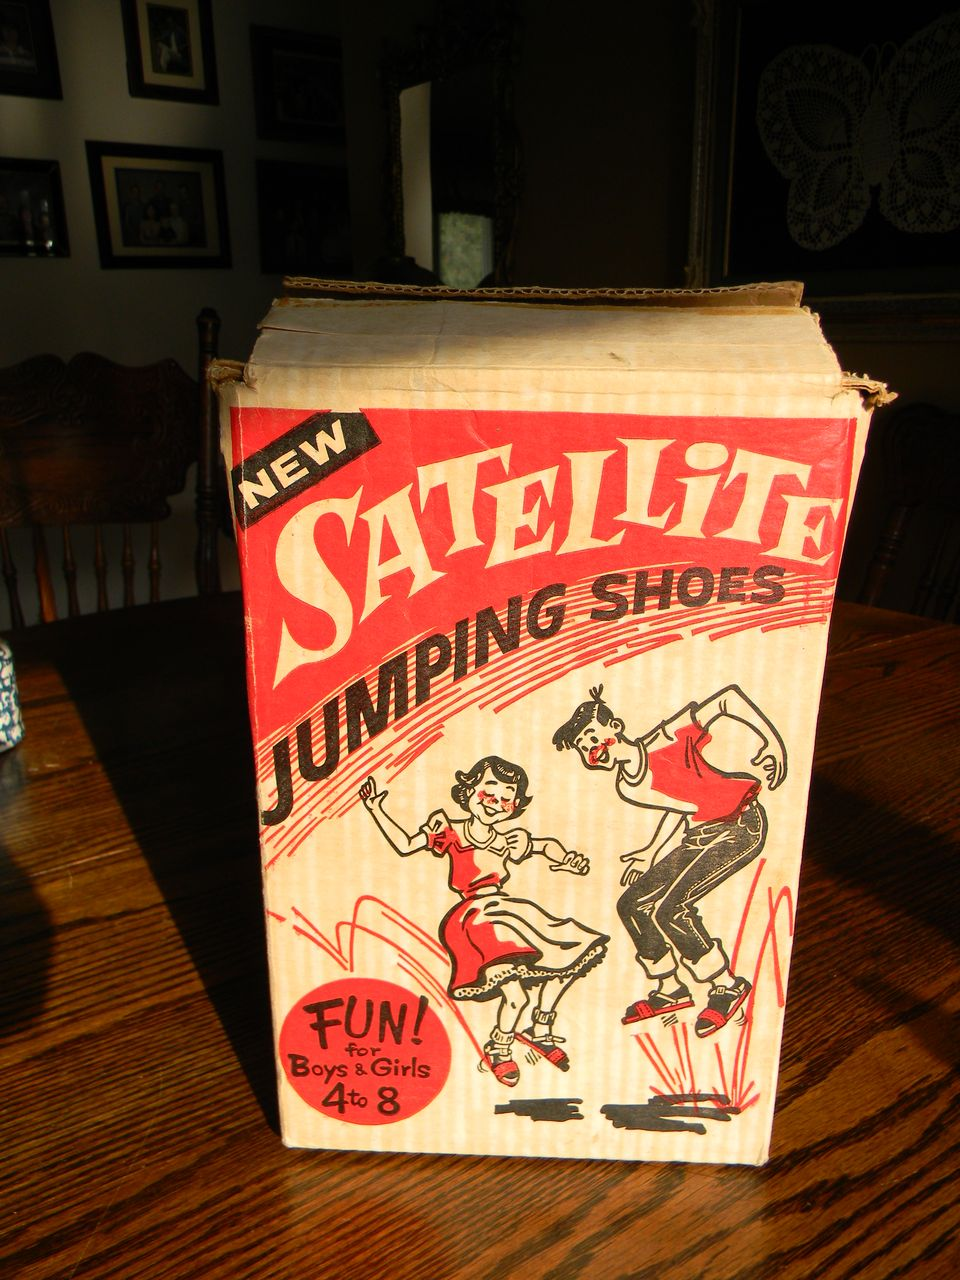 Satellite Jumping Shoes